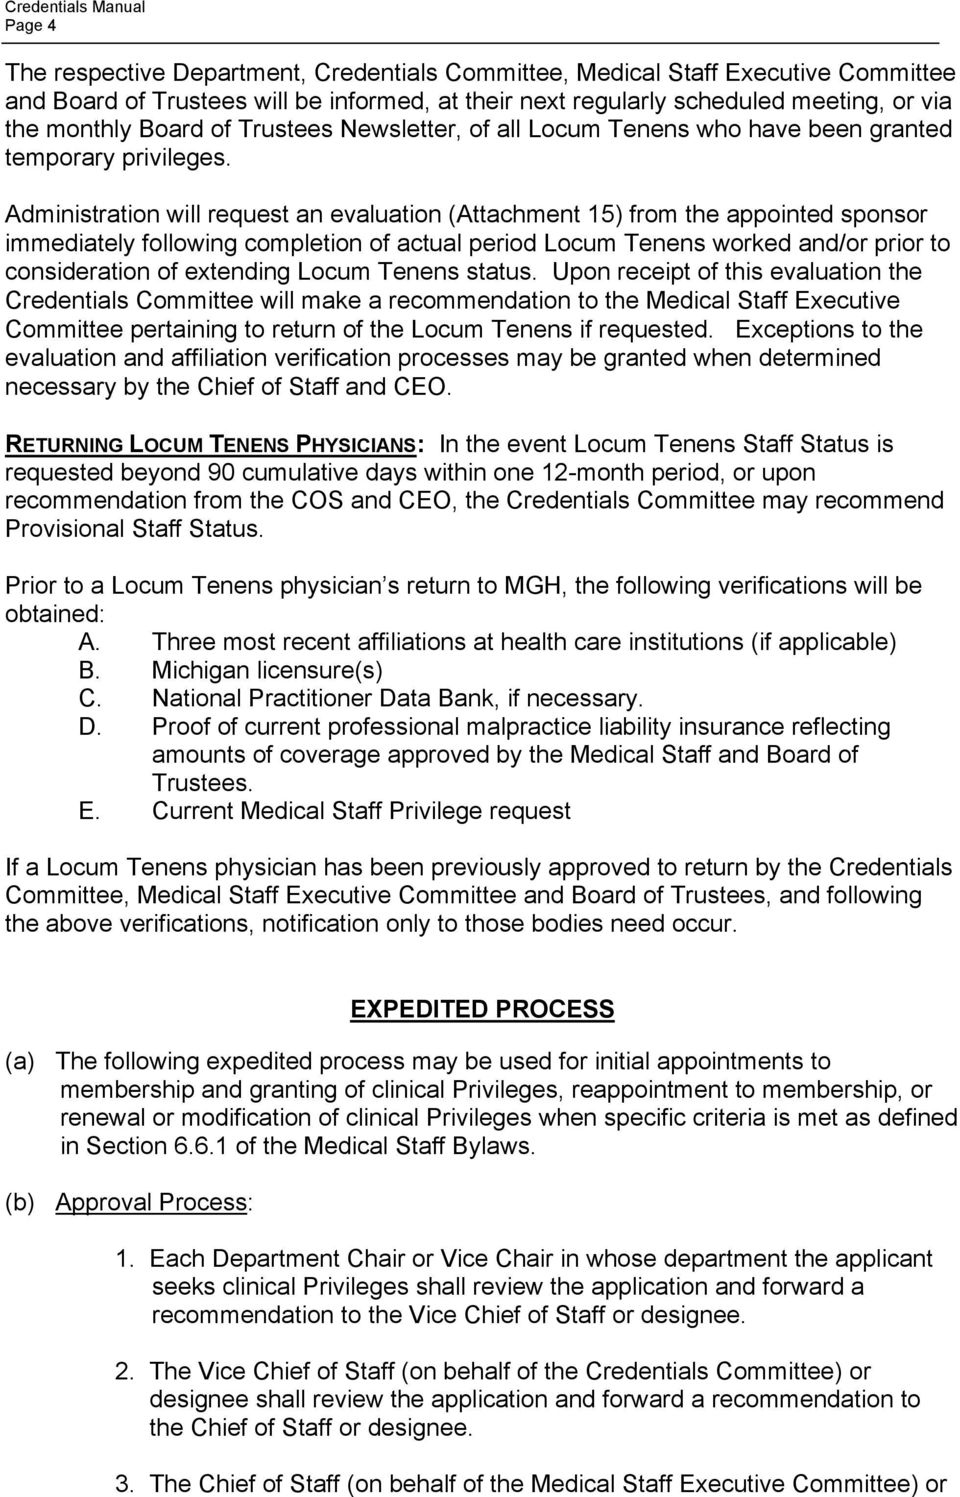 Administration will request an evaluation (Attachment 15) from the appointed sponsor immediately following completion of actual period Locum Tenens worked and/or prior to consideration of extending